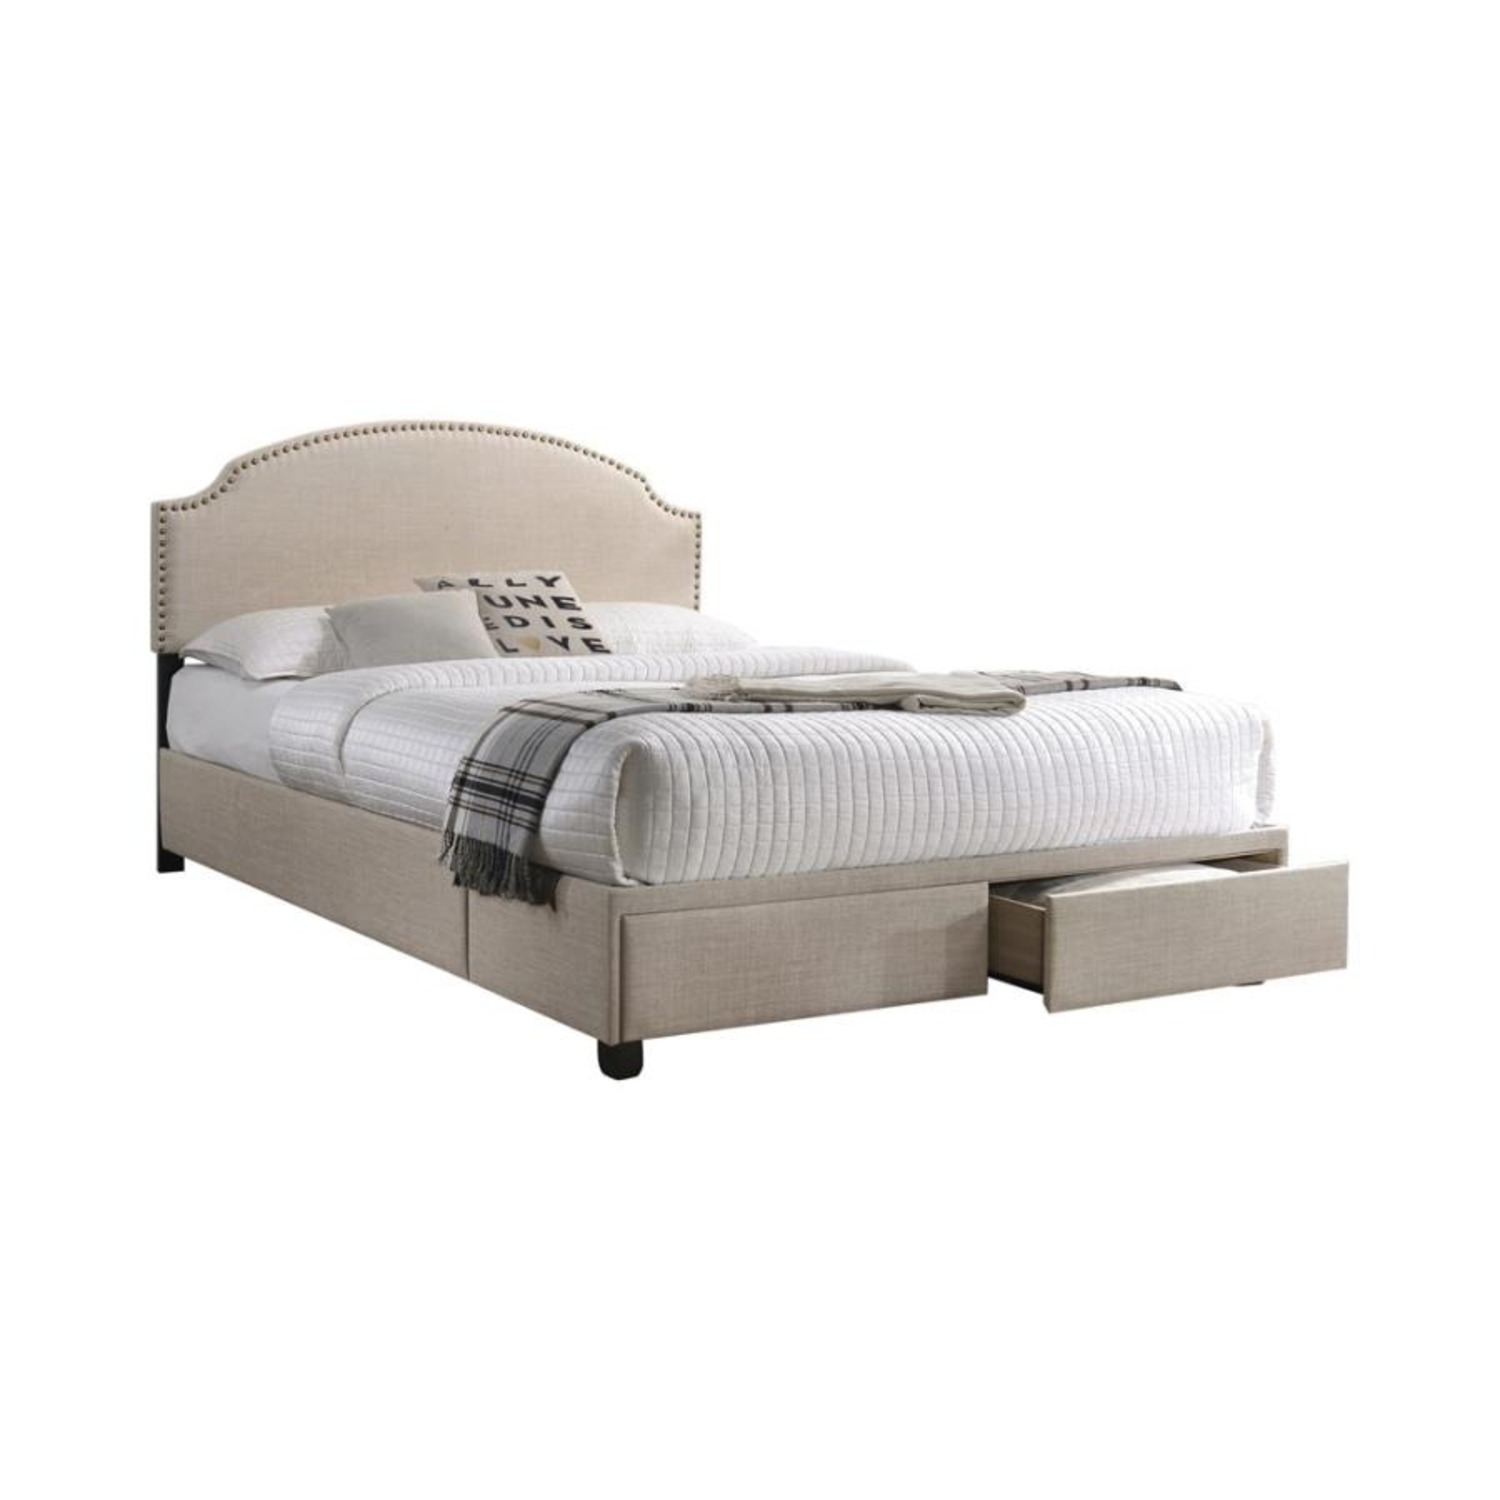 King Bed In Beige Fabric W/ 2 Storage Drawers - image-0